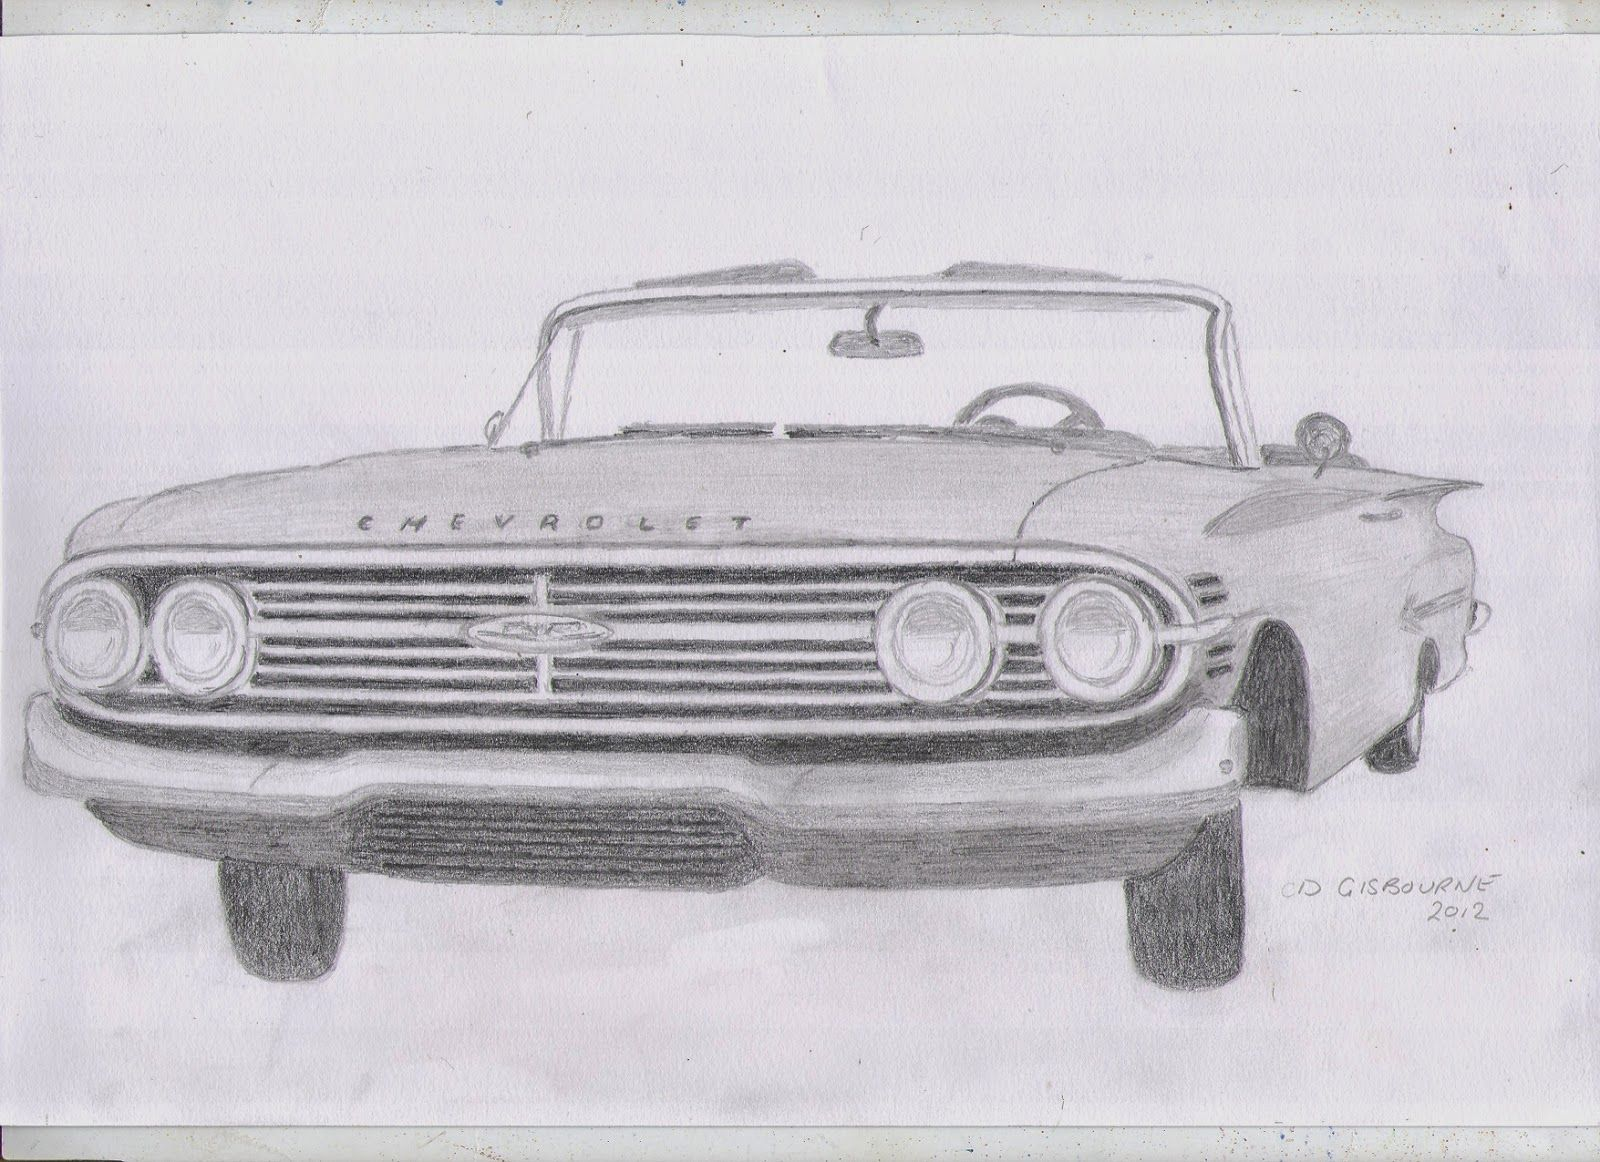 1960 car clipart free graphic transparent library Pencil drawing of a 1960 Chevrolet Impala | cars | Car drawing ... graphic transparent library